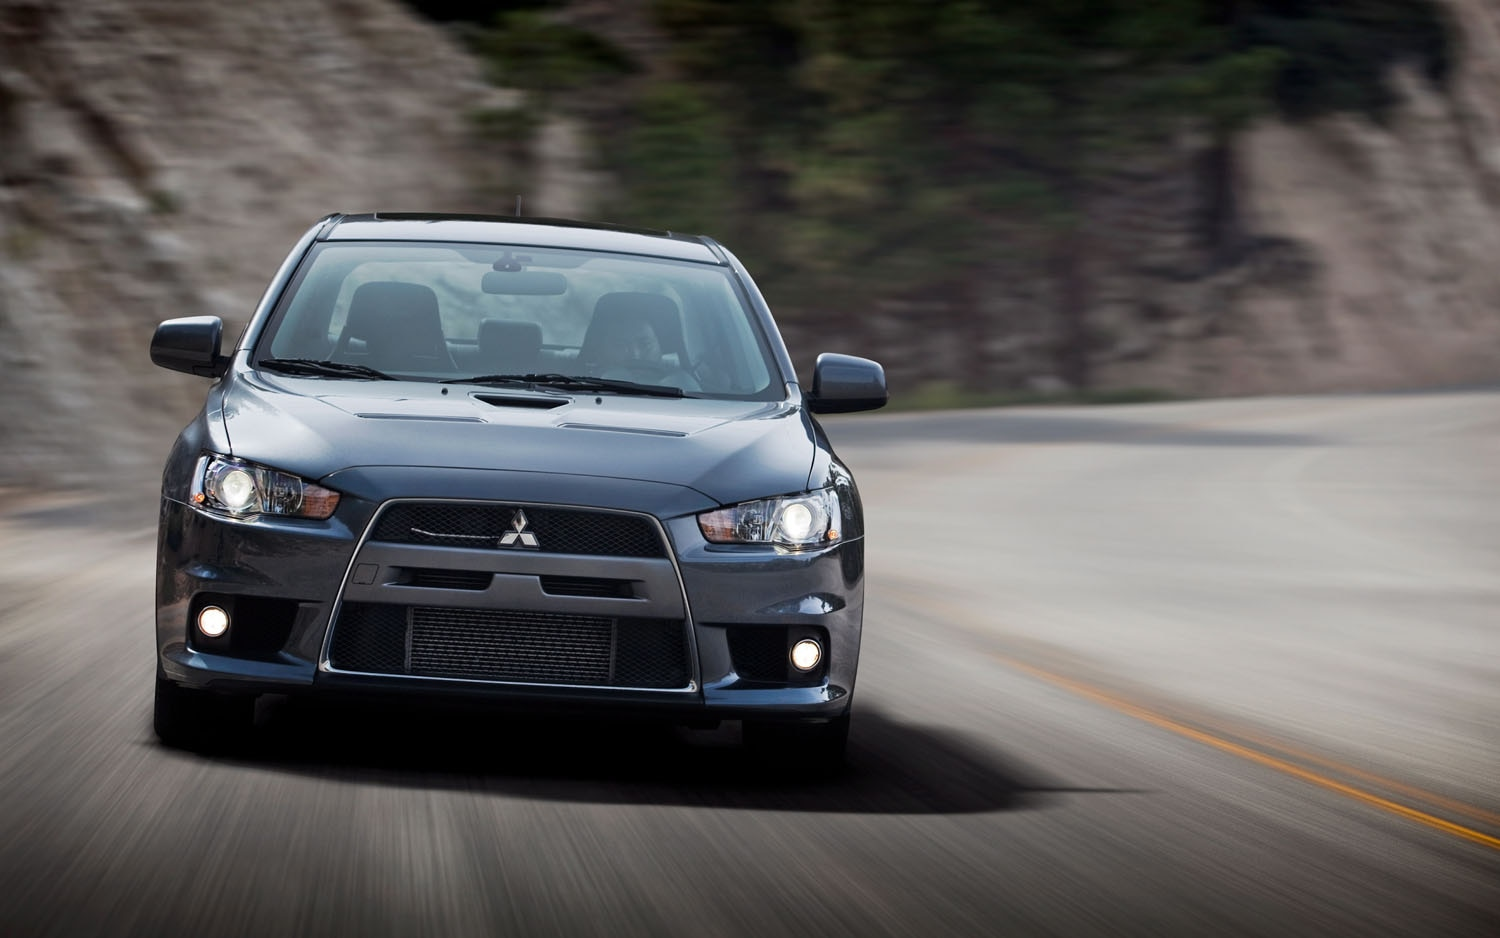 2010 Mitsubishi Lancer Evolution MR Front View1